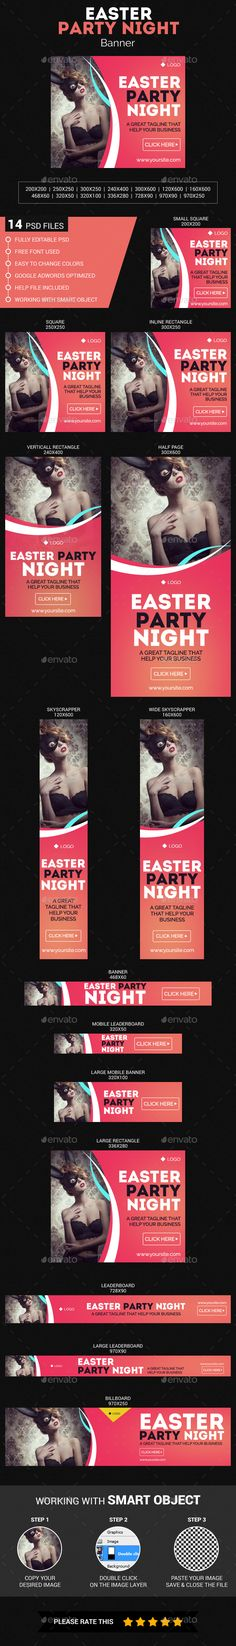 Easter Party Night